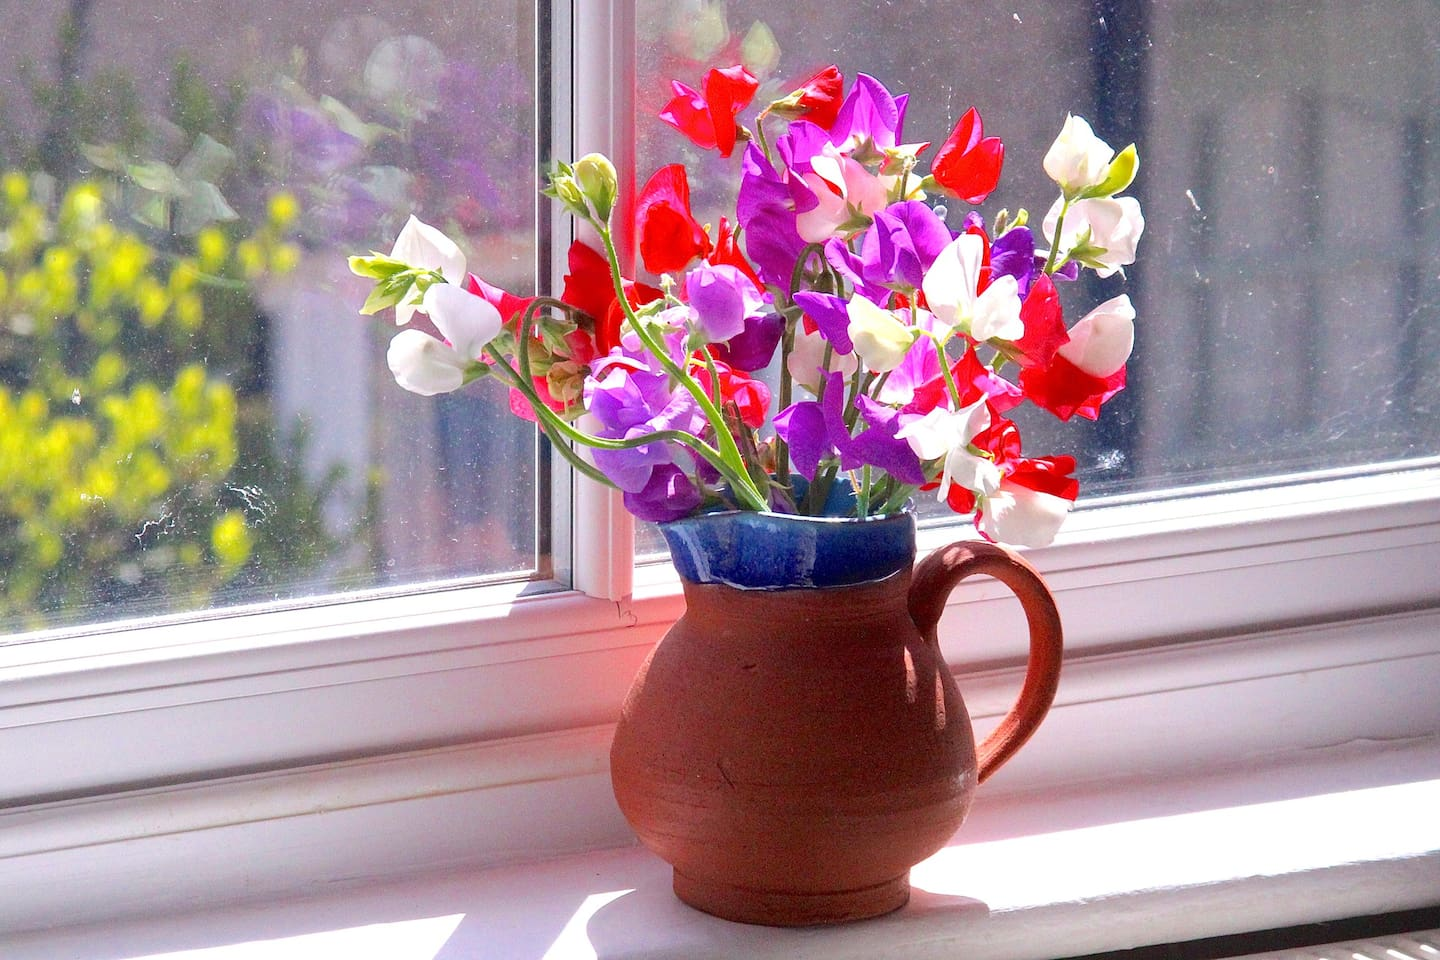 Summer sweet peas - from my allotment garden - there may be some when you're staying.